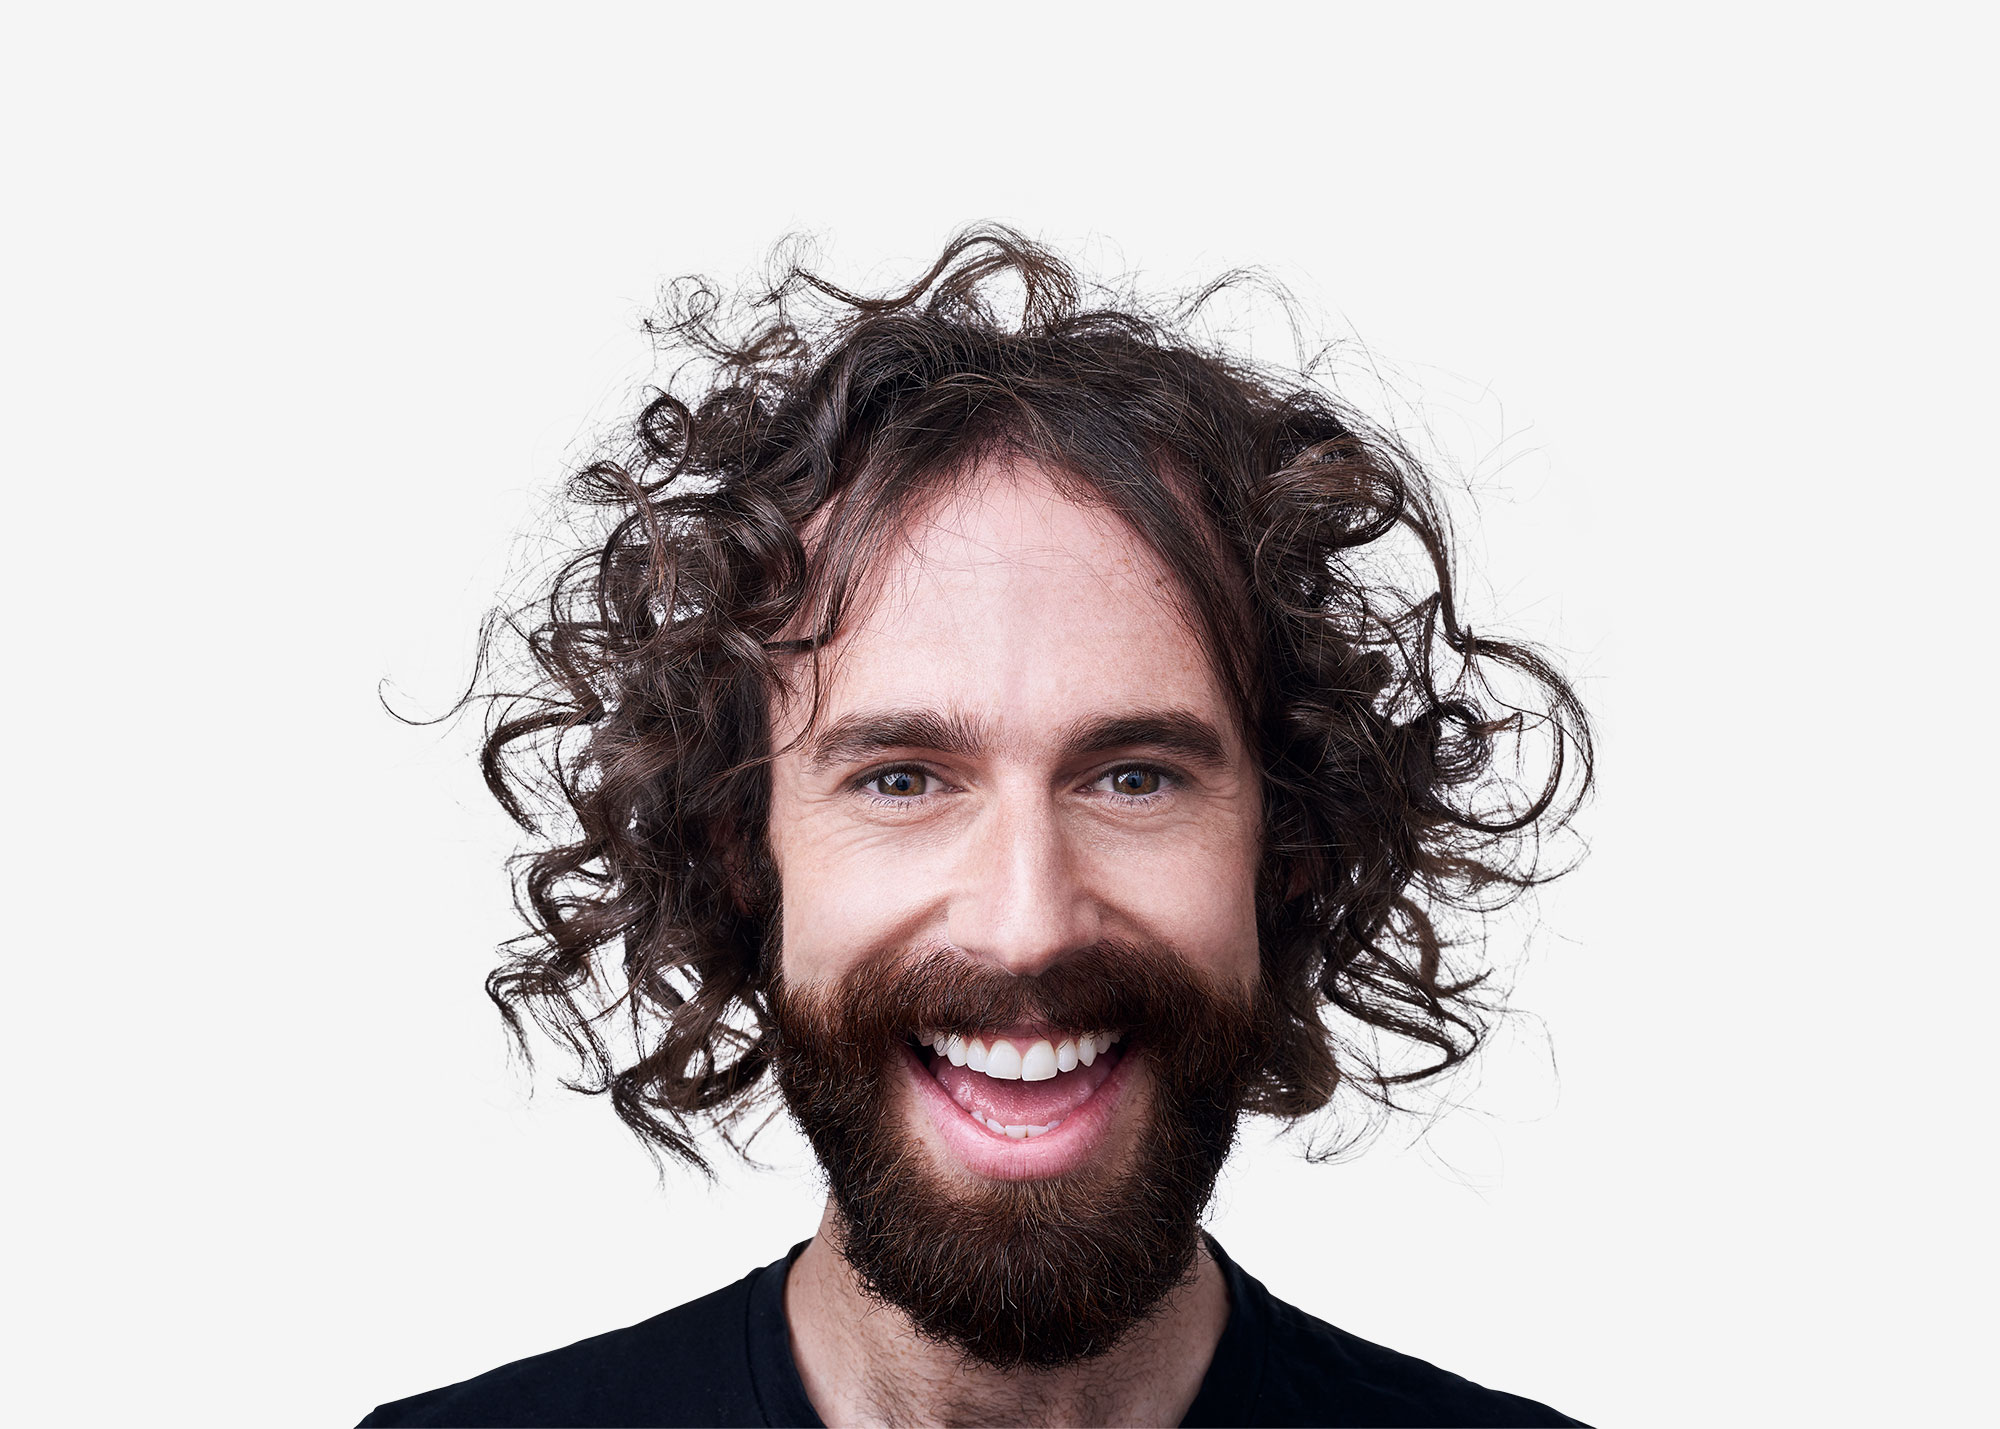 Waldo-contact-lenses-see-the-happiness-campaign-guy-long-curly-hair-smiling-sane-seven-2000px-wide